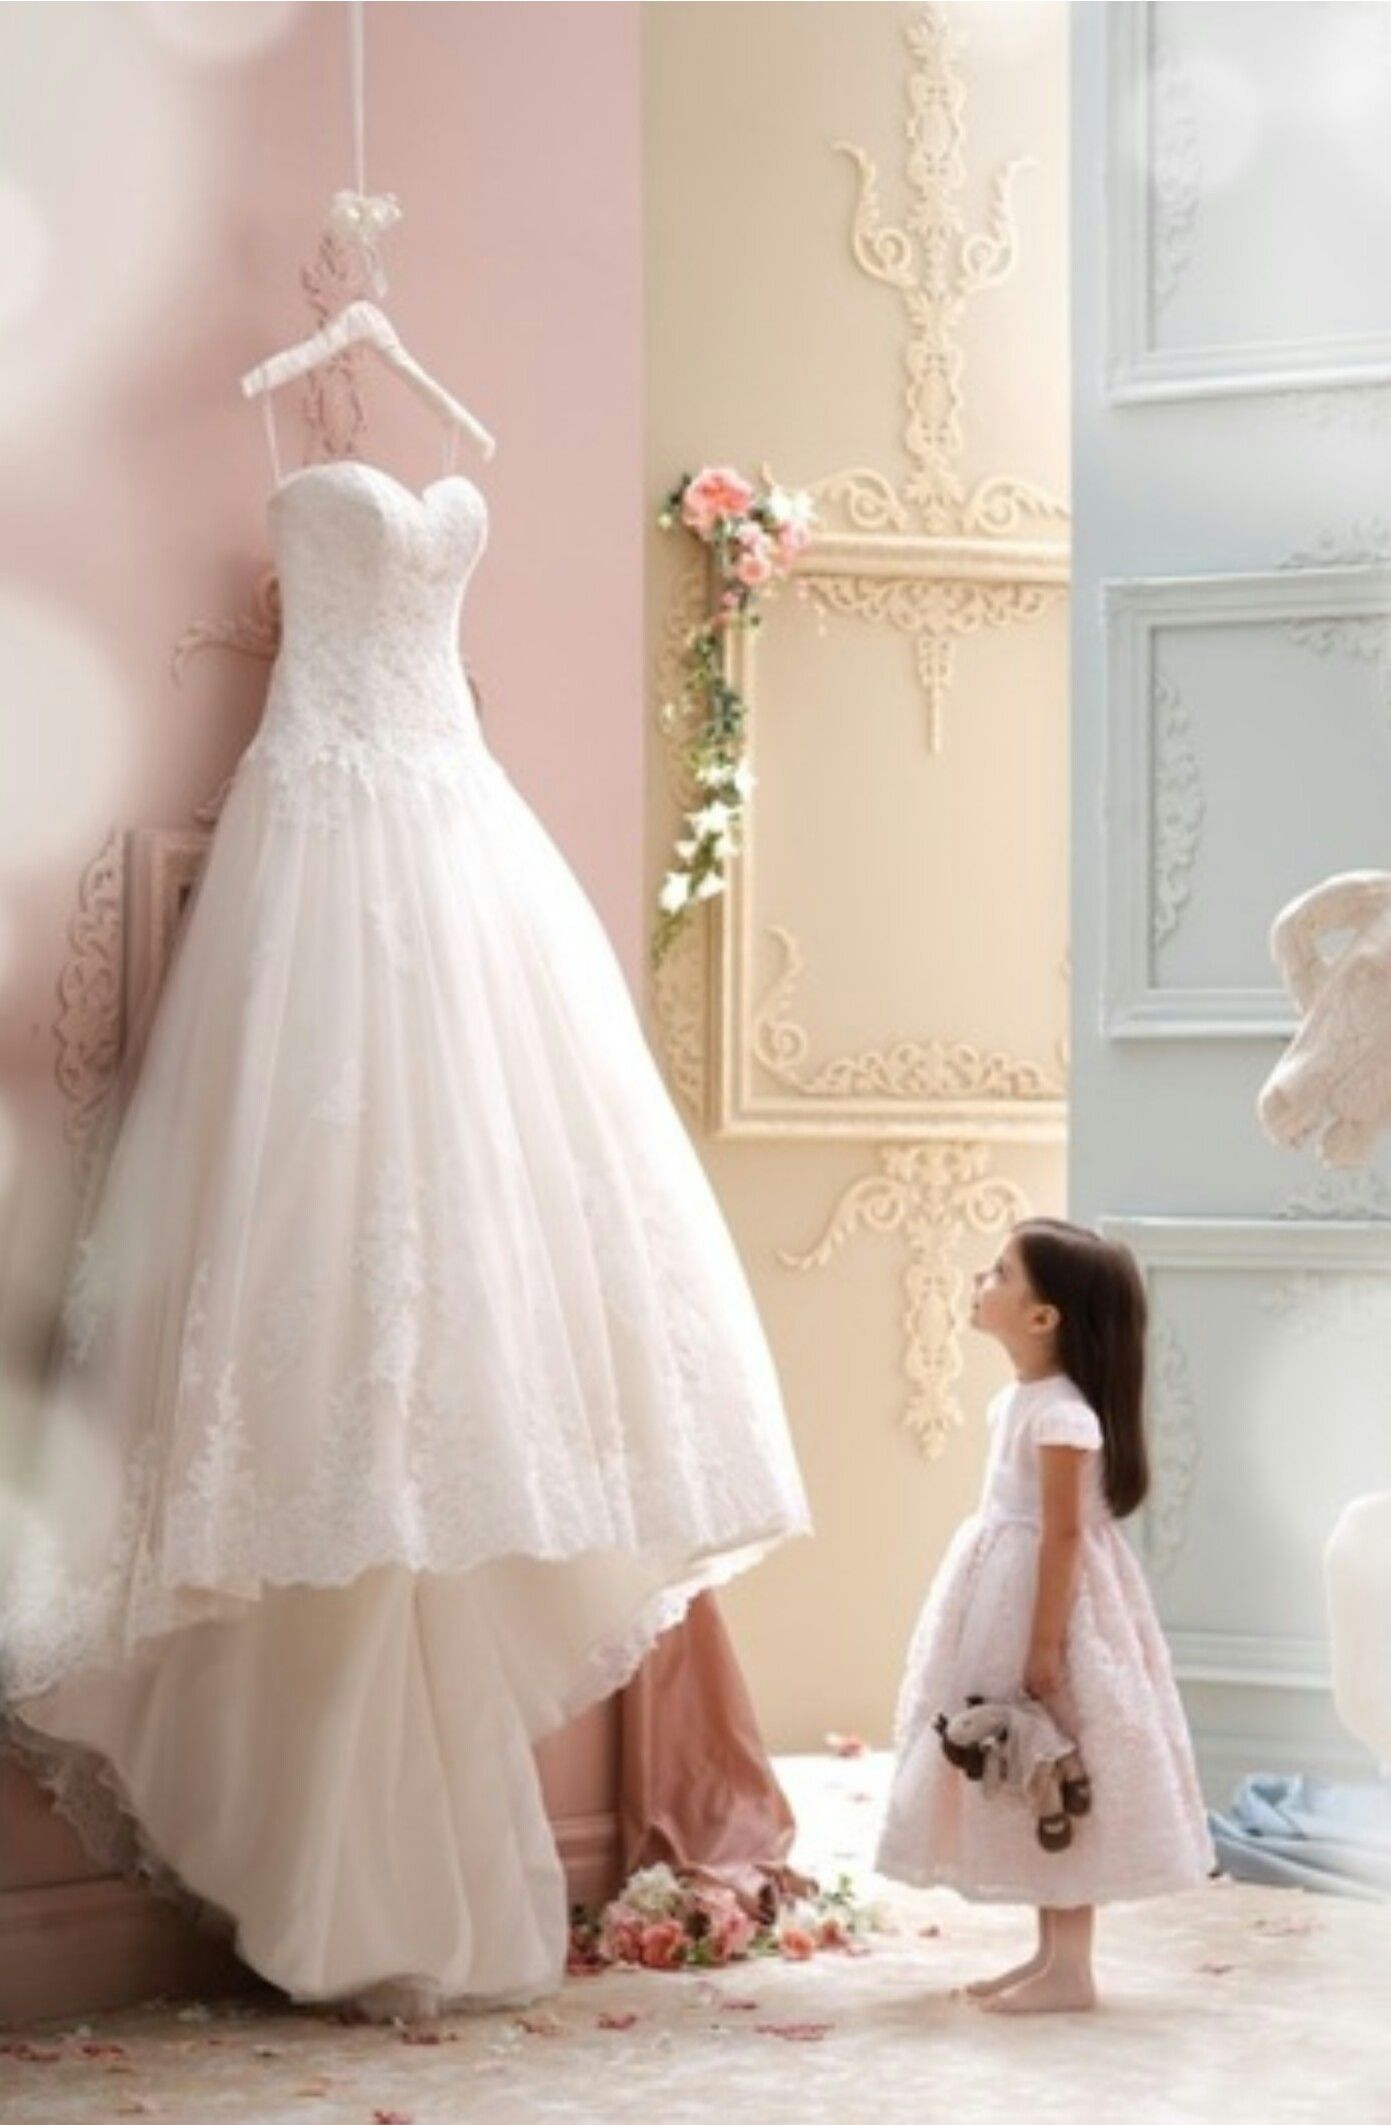 The perfect picture ❤ brides dress and the flower girl | Future Mrs ...